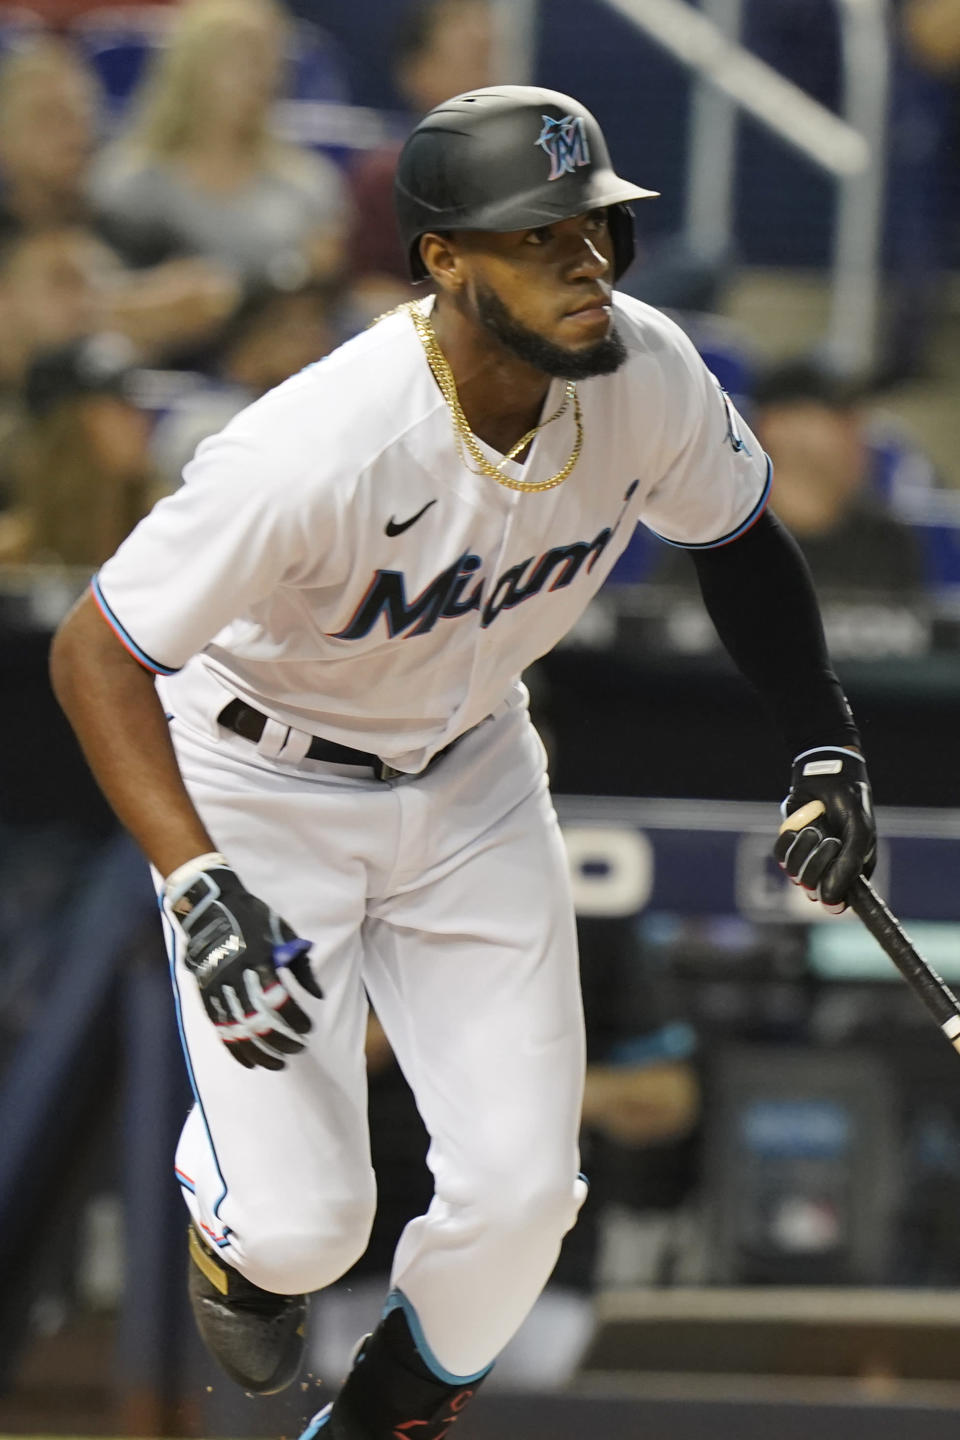 Miami Marlins' Bryan De La Cruz watches his hit during the first inning of a baseball game against the Washington Nationals, Tuesday, Sept. 21, 2021, in Miami. (AP Photo/Marta Lavandier)